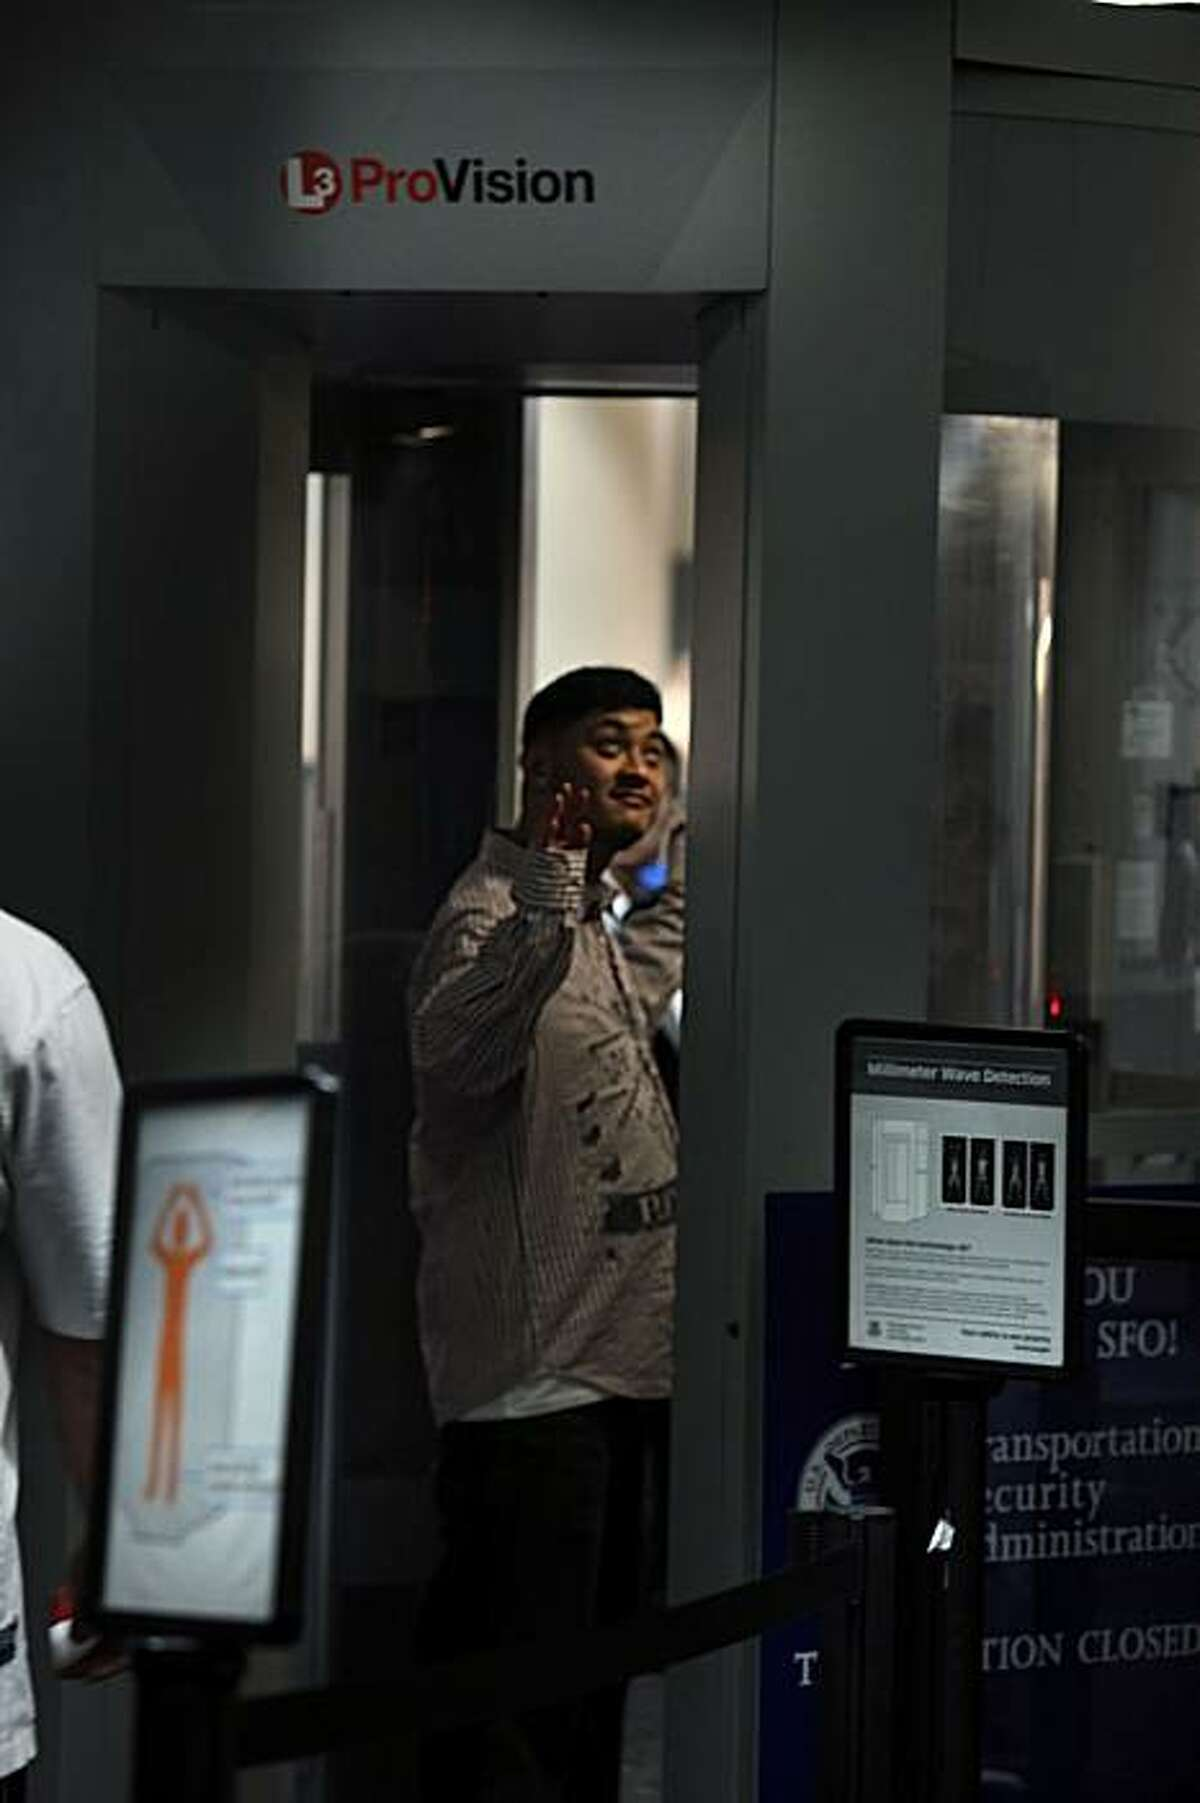 Passengers at SFO International Airport going through security screening using the Whole Body Imager (WBI) in South San Francisco, Ca., on Monday, December 28, 2009. Using millimeter wave detection the WBI is the only scanner in the bay area which SFO has been using since nine months ago.